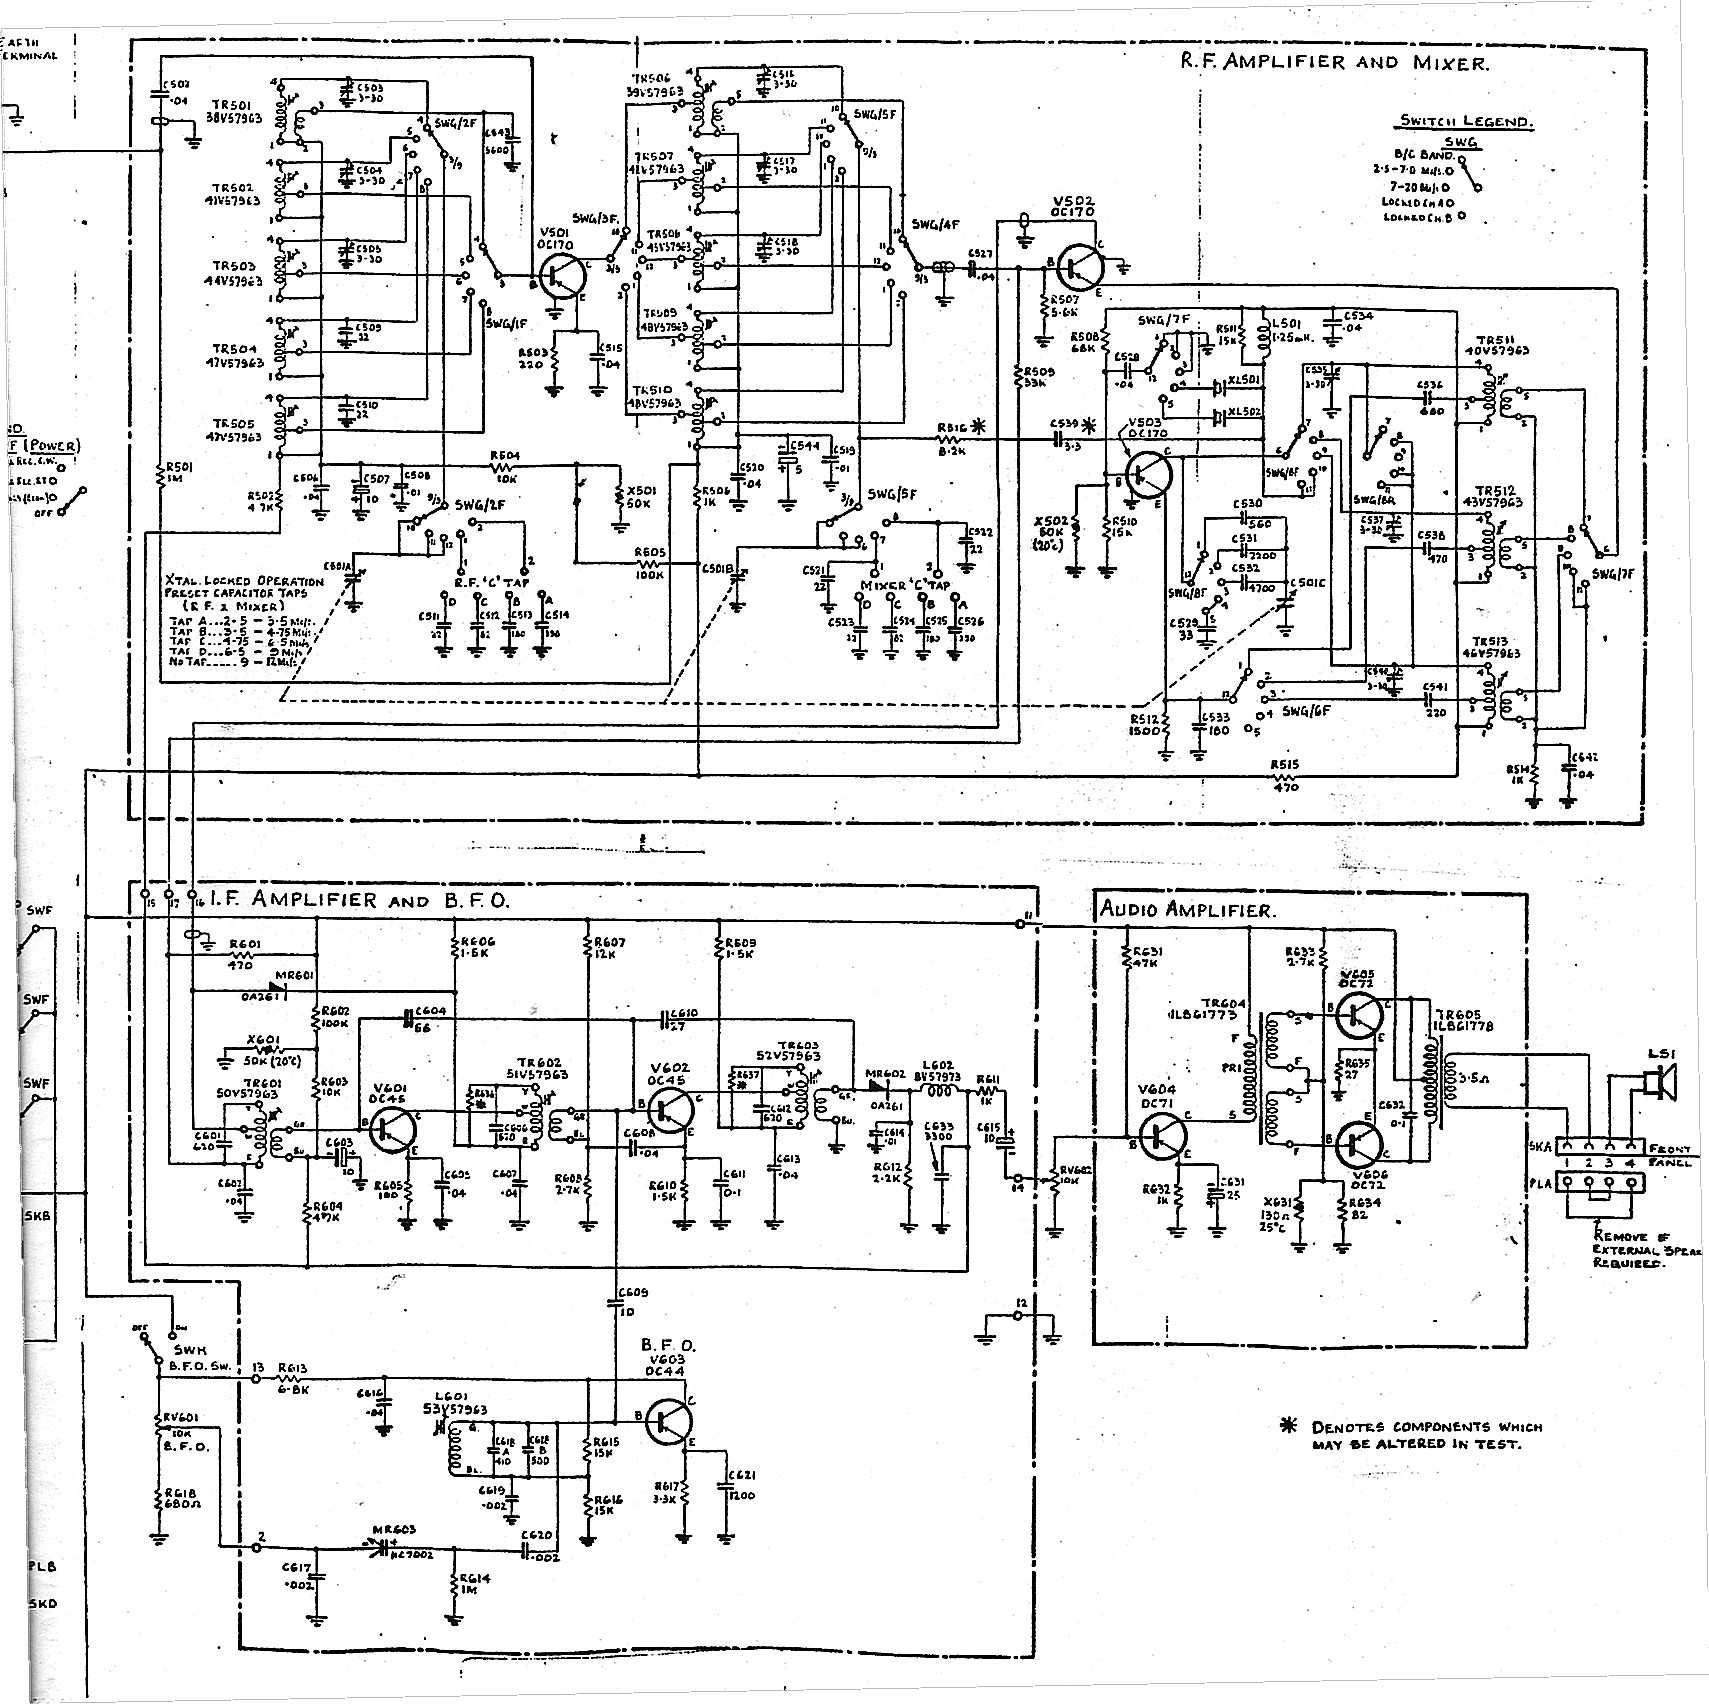 wre type 2 transceiver circuit diagrams rh users tpg com au infrared transceiver circuit diagram transceiver schematic diagram